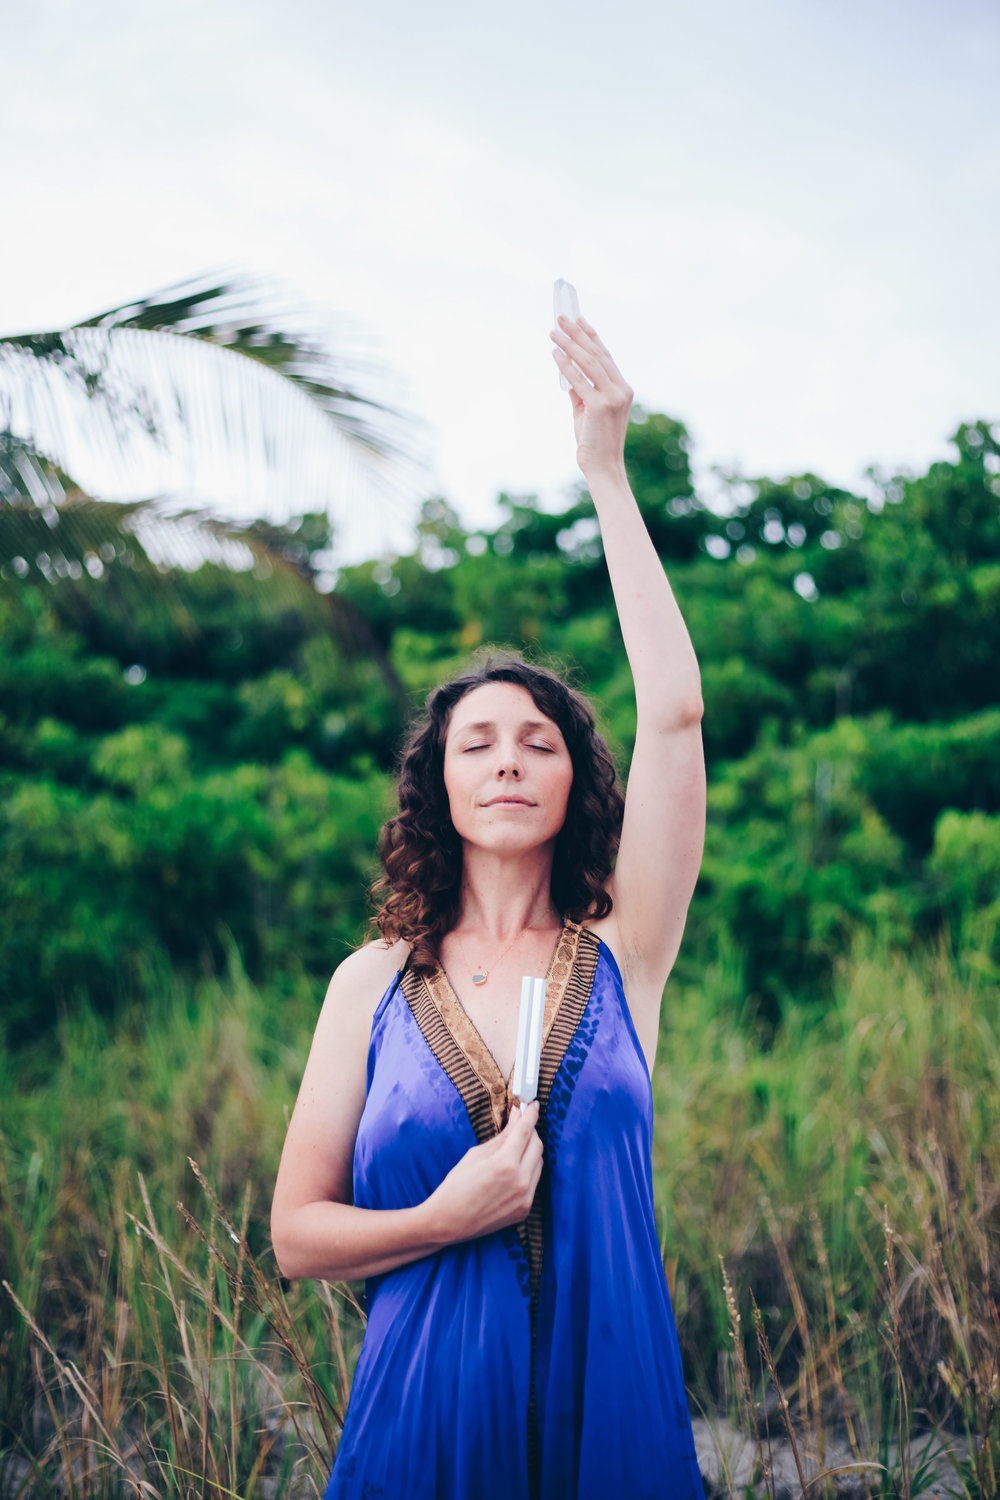 Sound Creation & Education - Jan 11 - Feb 1, 2019Fridays 4-6pThis 4 week series shares the creation and education of sound with master Reiki teacher, co-owner of Tranquility School of Integrative Healing and Sound Practitioner, Alexandra Smith.Each class will guide you into a journey of deep learning and exploration through artistic creation anda the multi use of instruments from voice, crystal bowls, chimes, Tibetian bowls and more.I N V E S T M E N T:$80 by Jan 10 / $90 afterDrop in: $2520% OFF for those with $108 Memberships & 5 Class Memberships